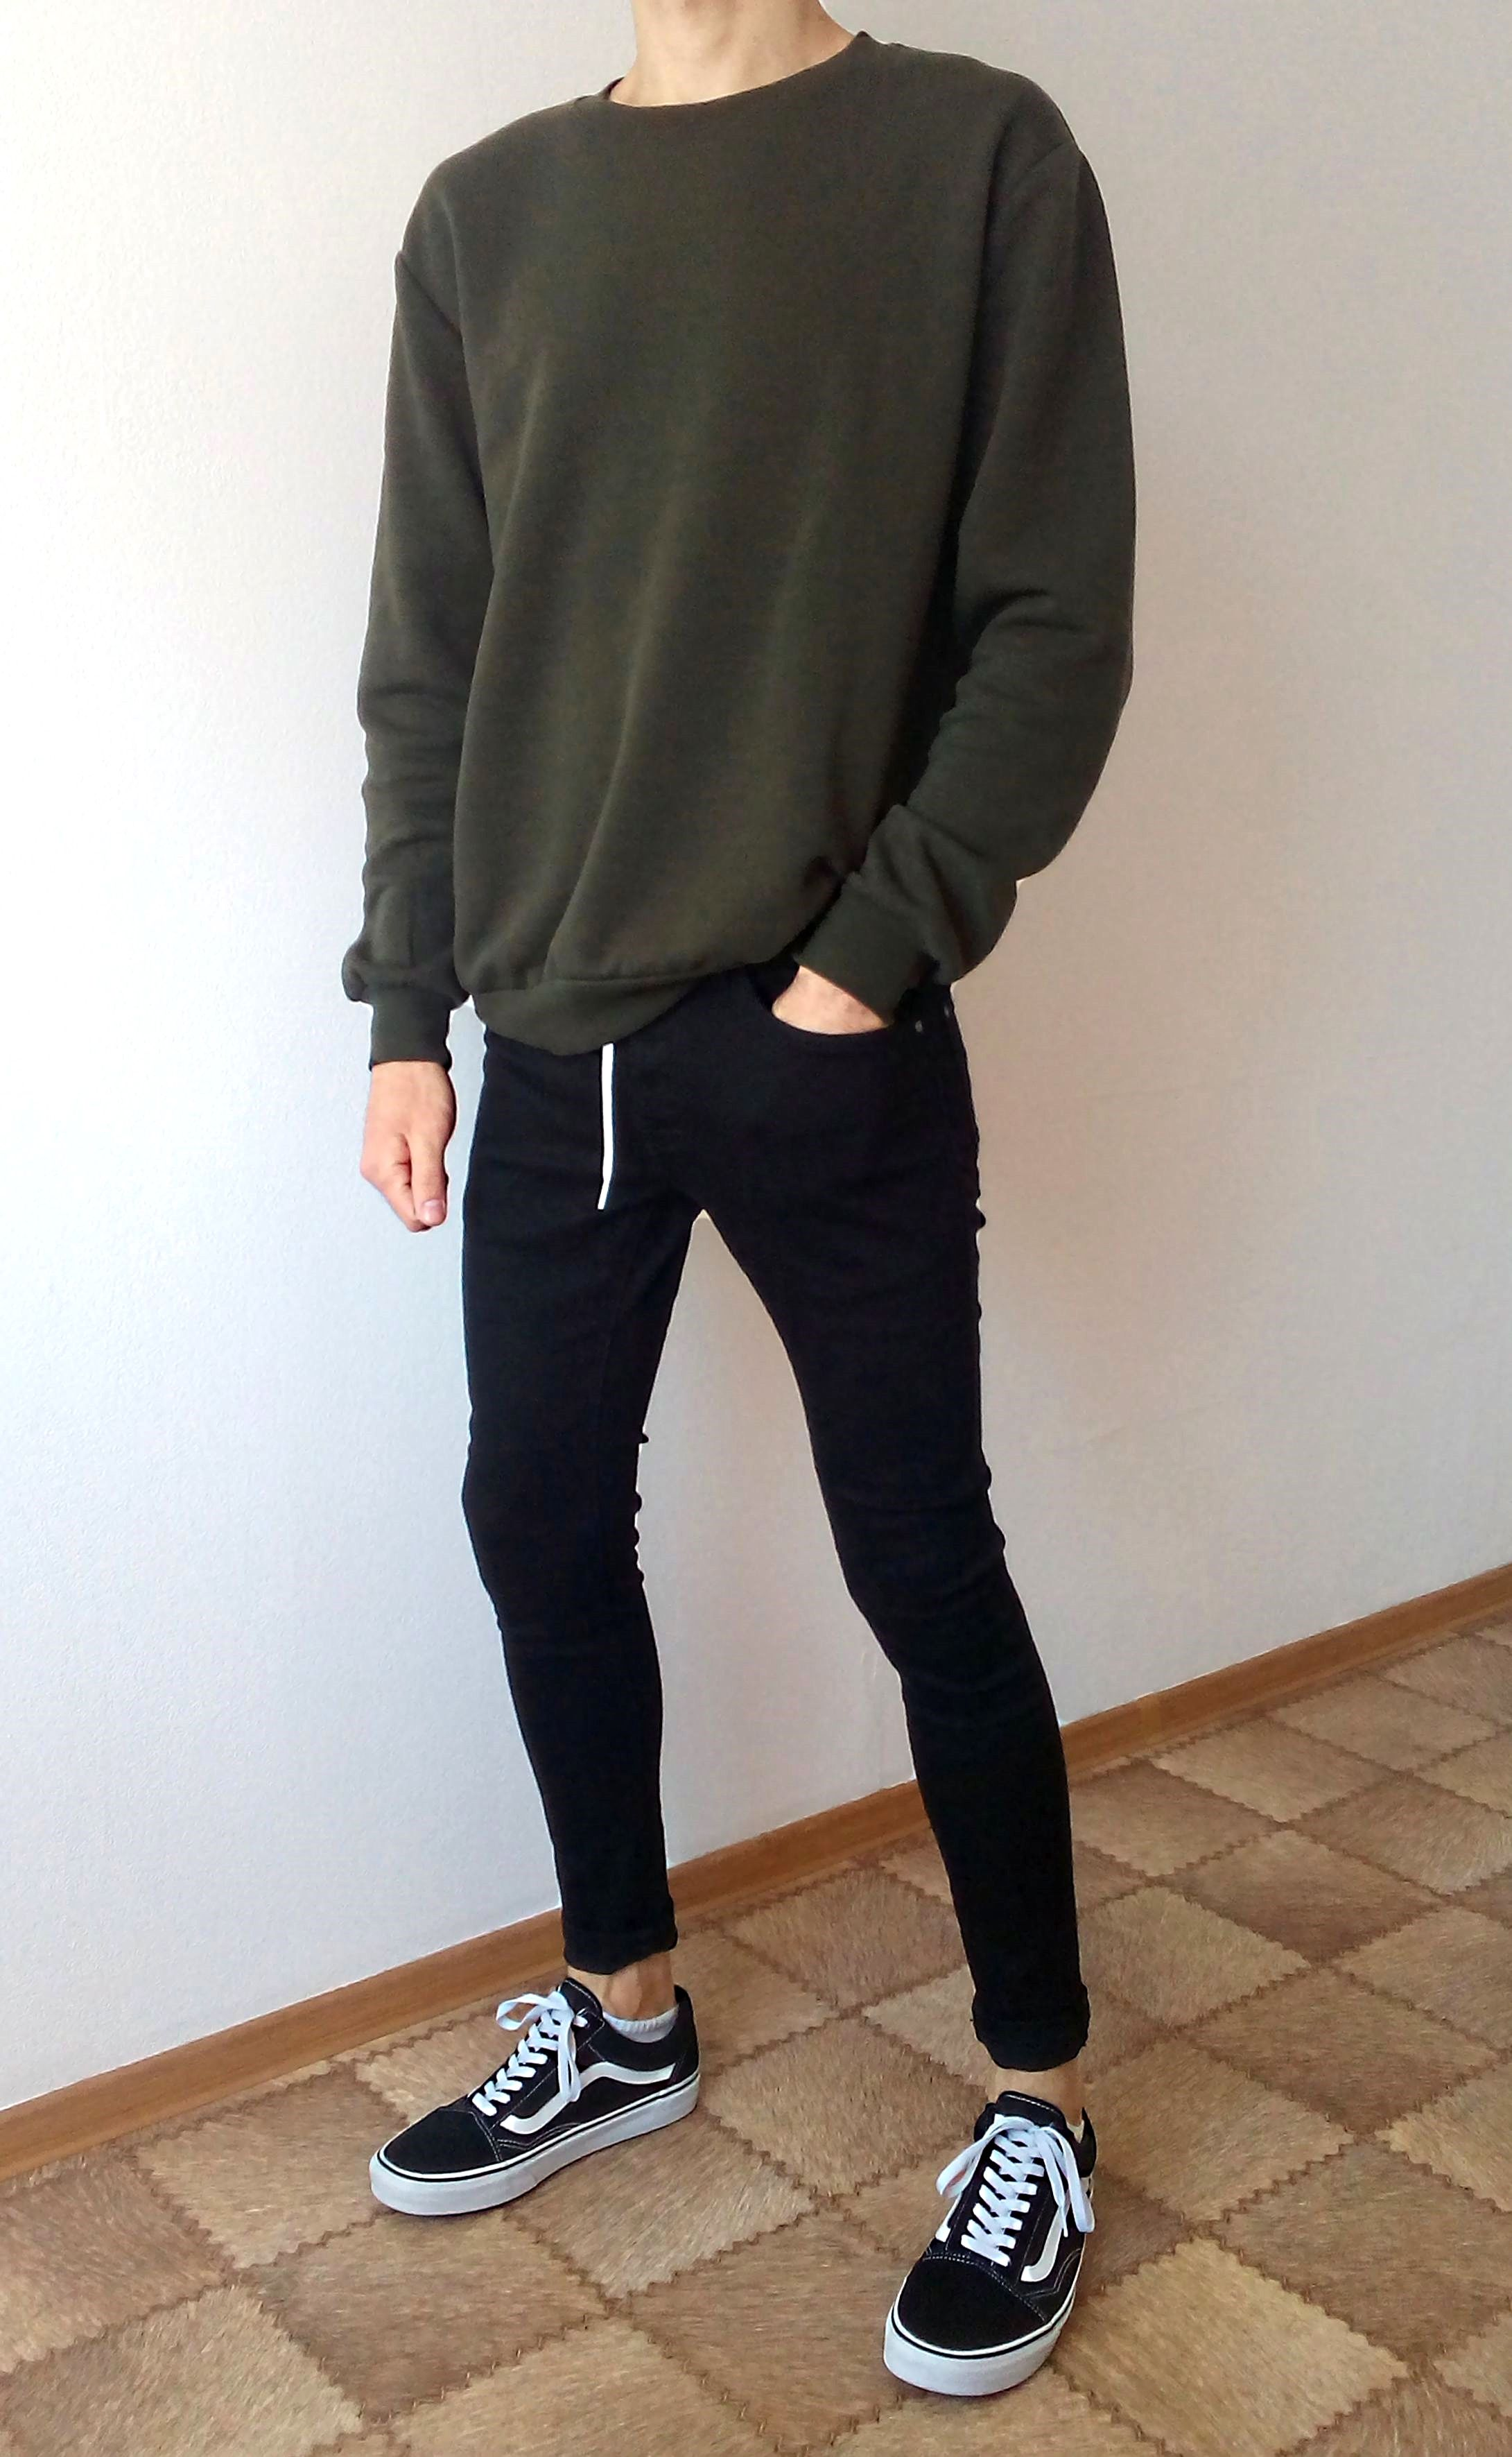 d37d49b22f Pin by Jewel Scott on Clothes in 2019 | Mens fashion, Fashion ...